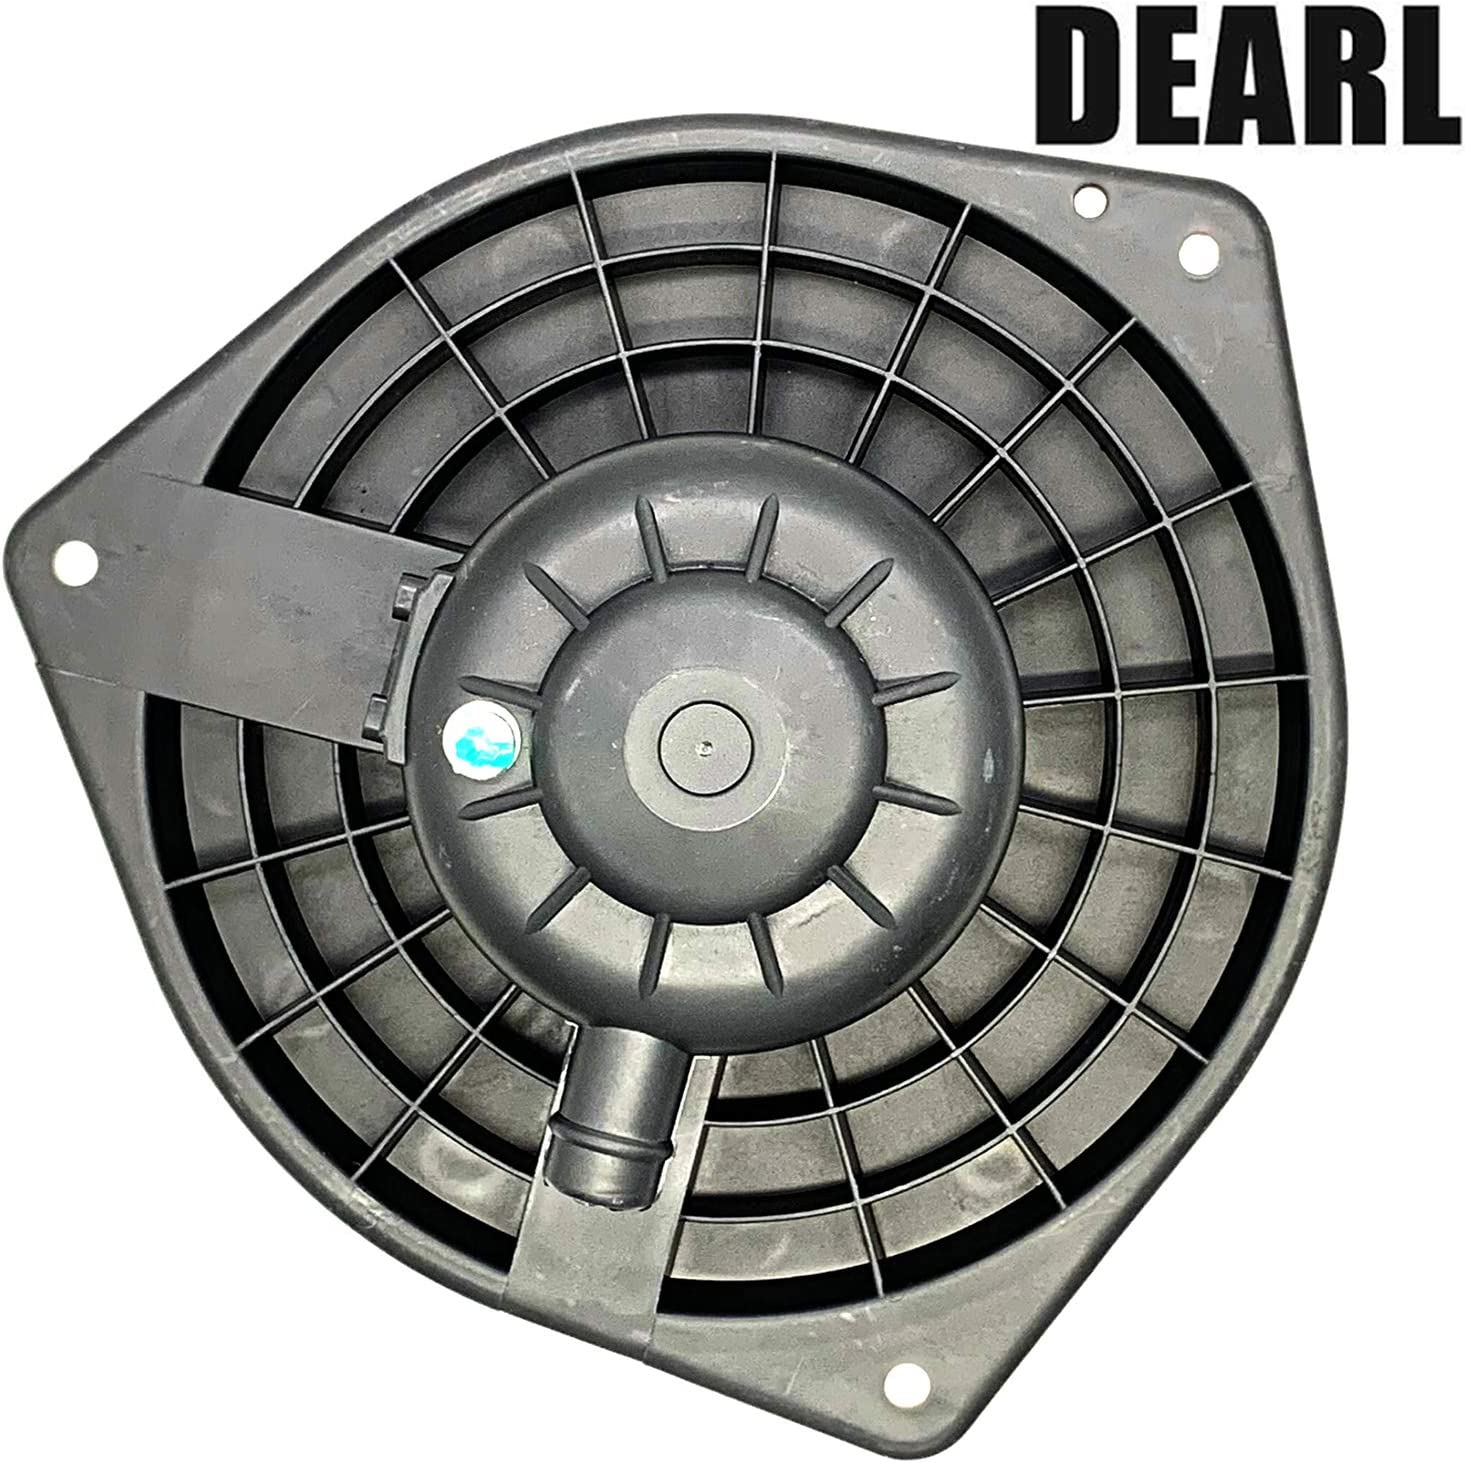 2.4L L4 Only 08-13 Outlander Front AC Heater Blower Motor with Fan Compatible with Mitsubishi 08-17 Lancer 14-18 Outlander // 13-17 Outlander Sport Replaces 7802A217